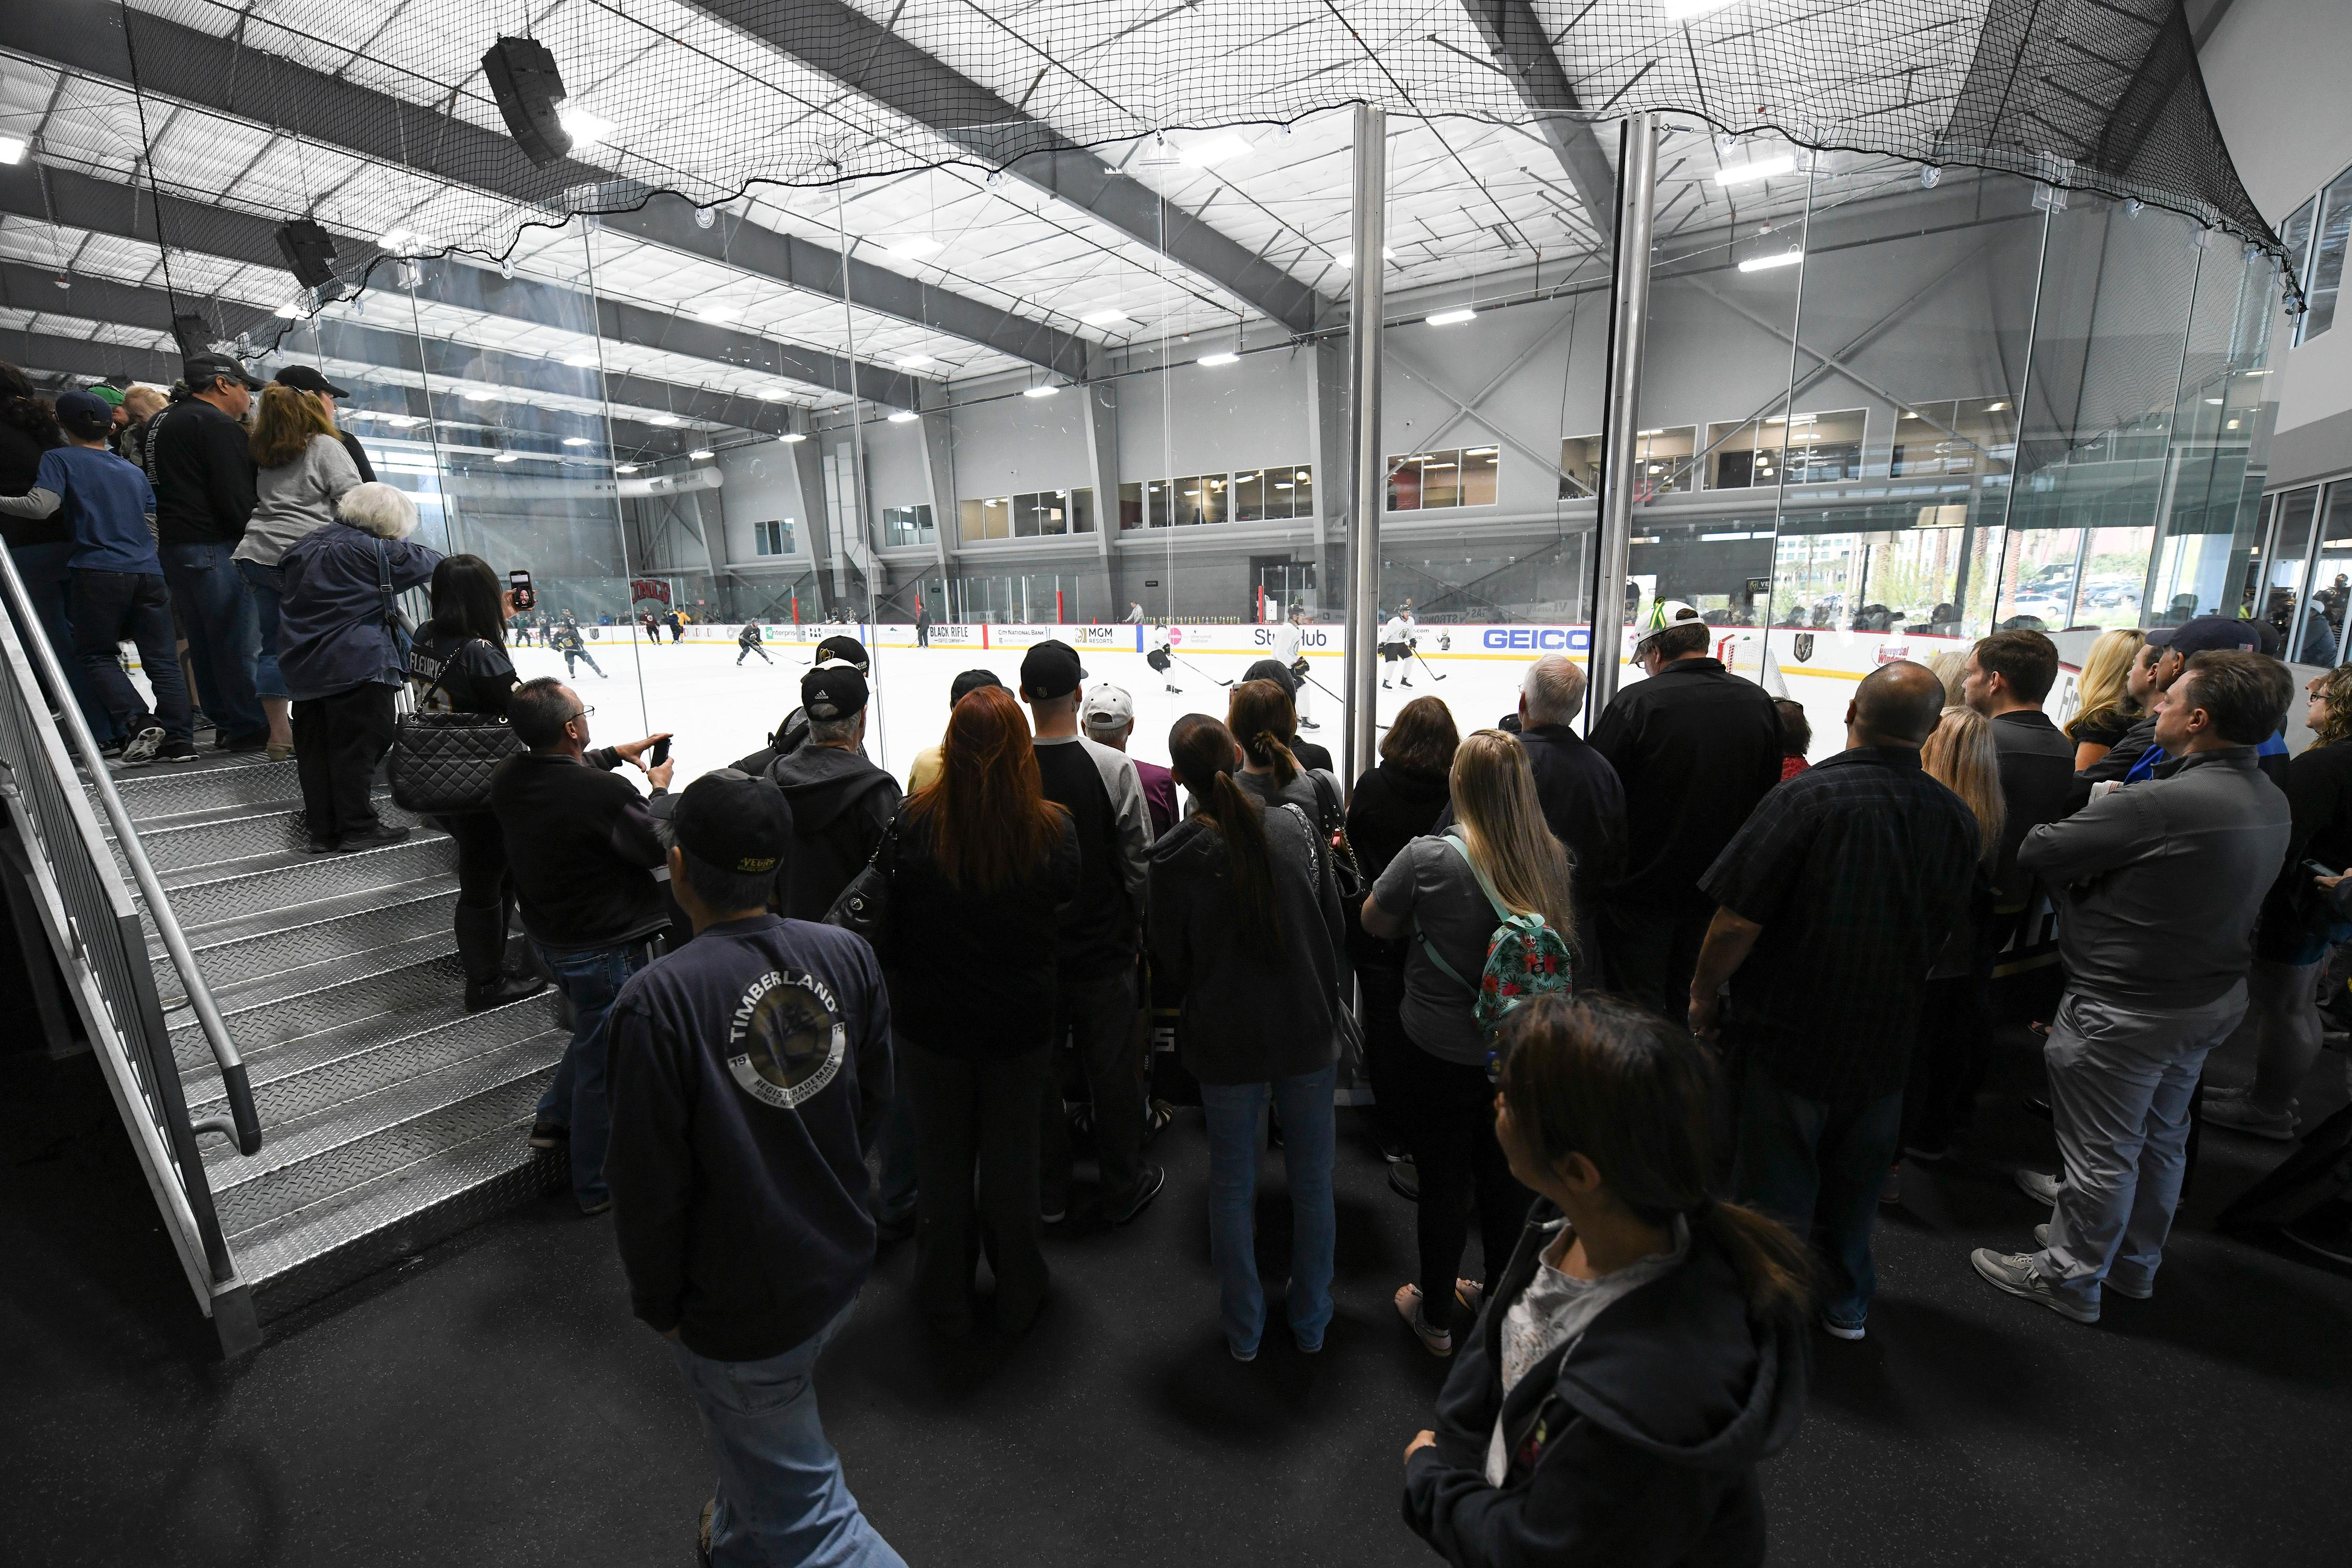 Fans crowd a corner to watch the action during the Vegas Golden Knights practice Friday, April 20, 2018, at City National Arena in Las Vegas. CREDIT: Sam Morris/Las Vegas News Bureau